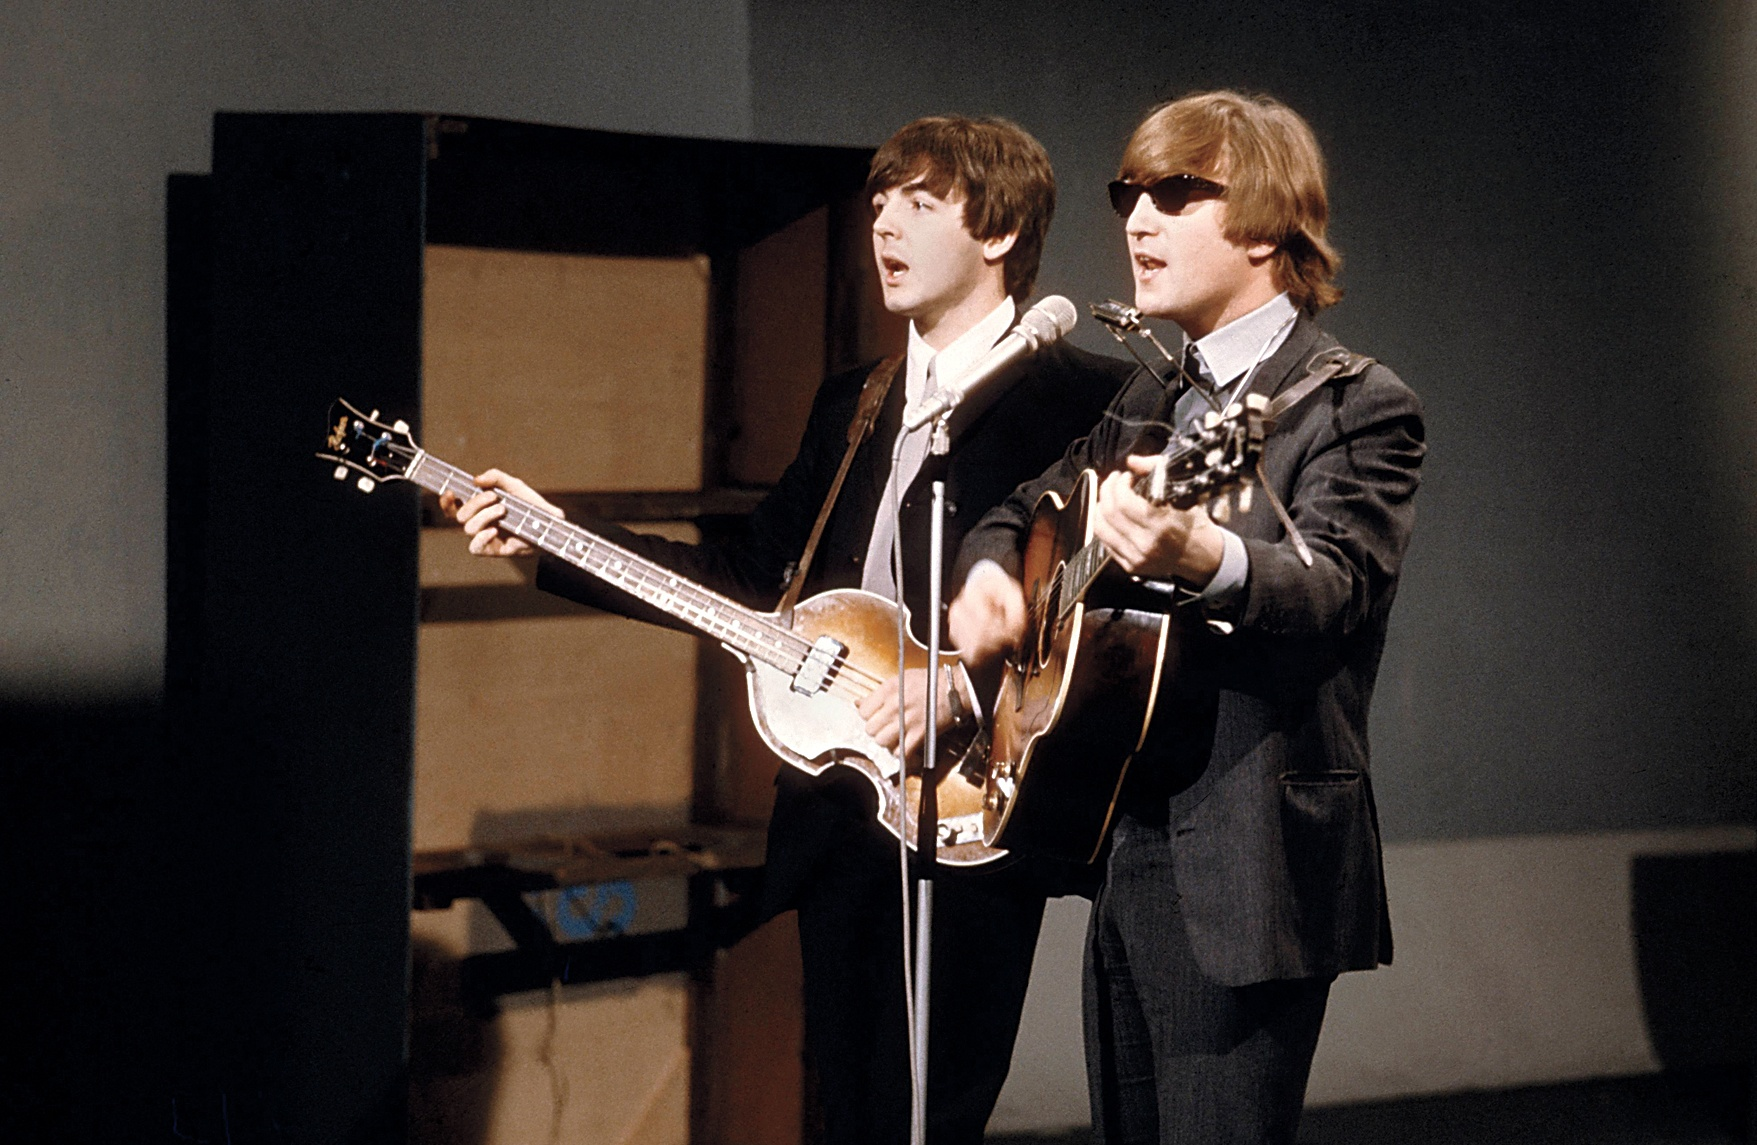 a comparison of the john lennon and paul mccartney from the music band the beatles